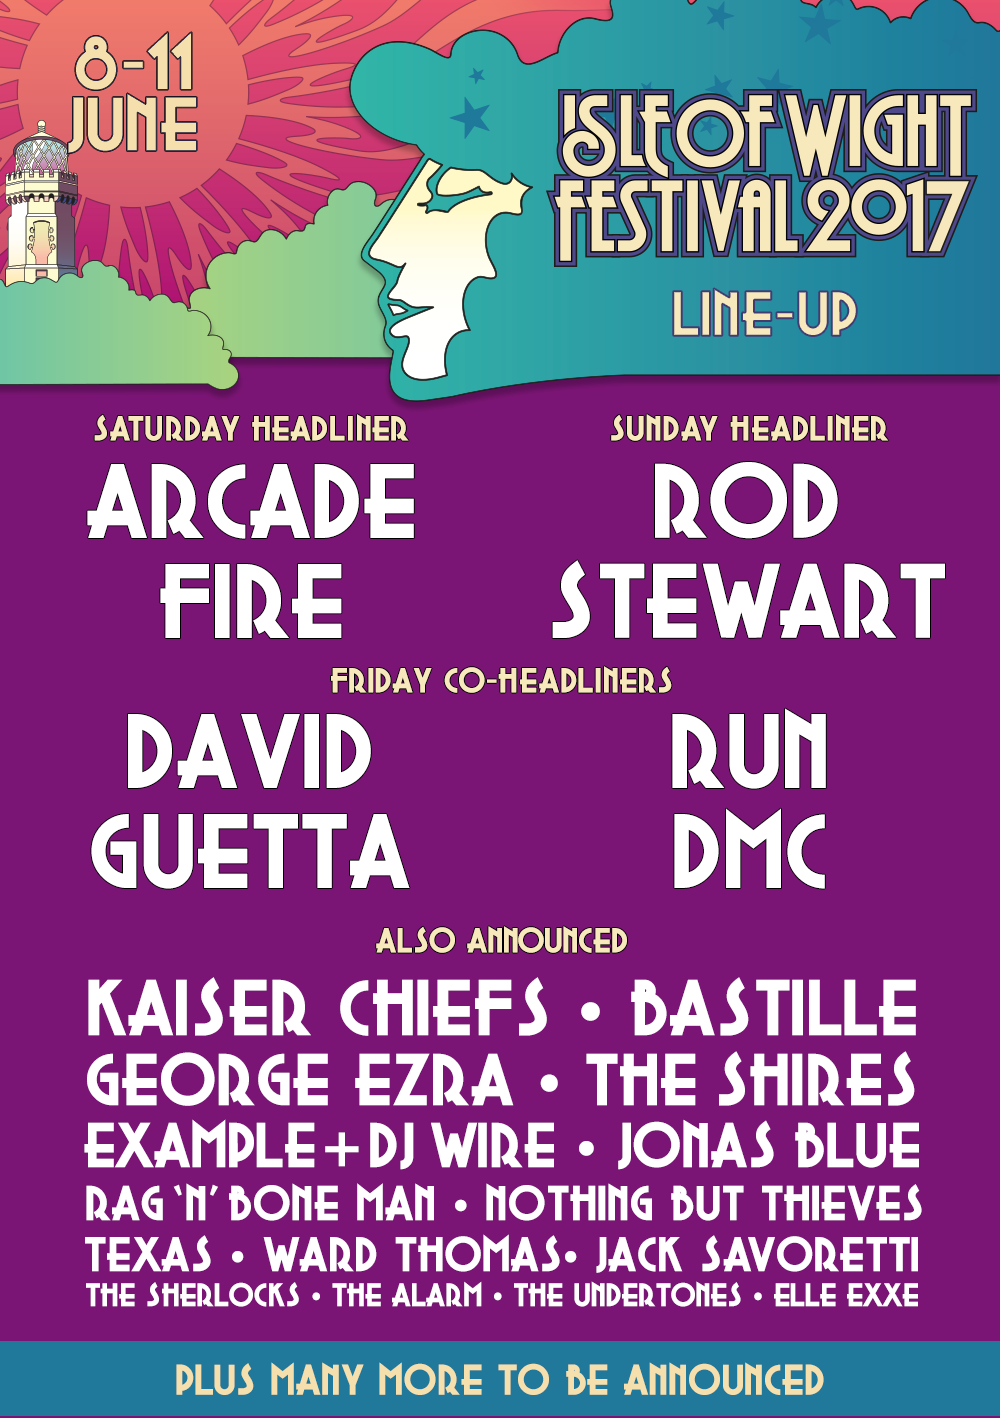 Isle Of Wight Festival Lineup 2017